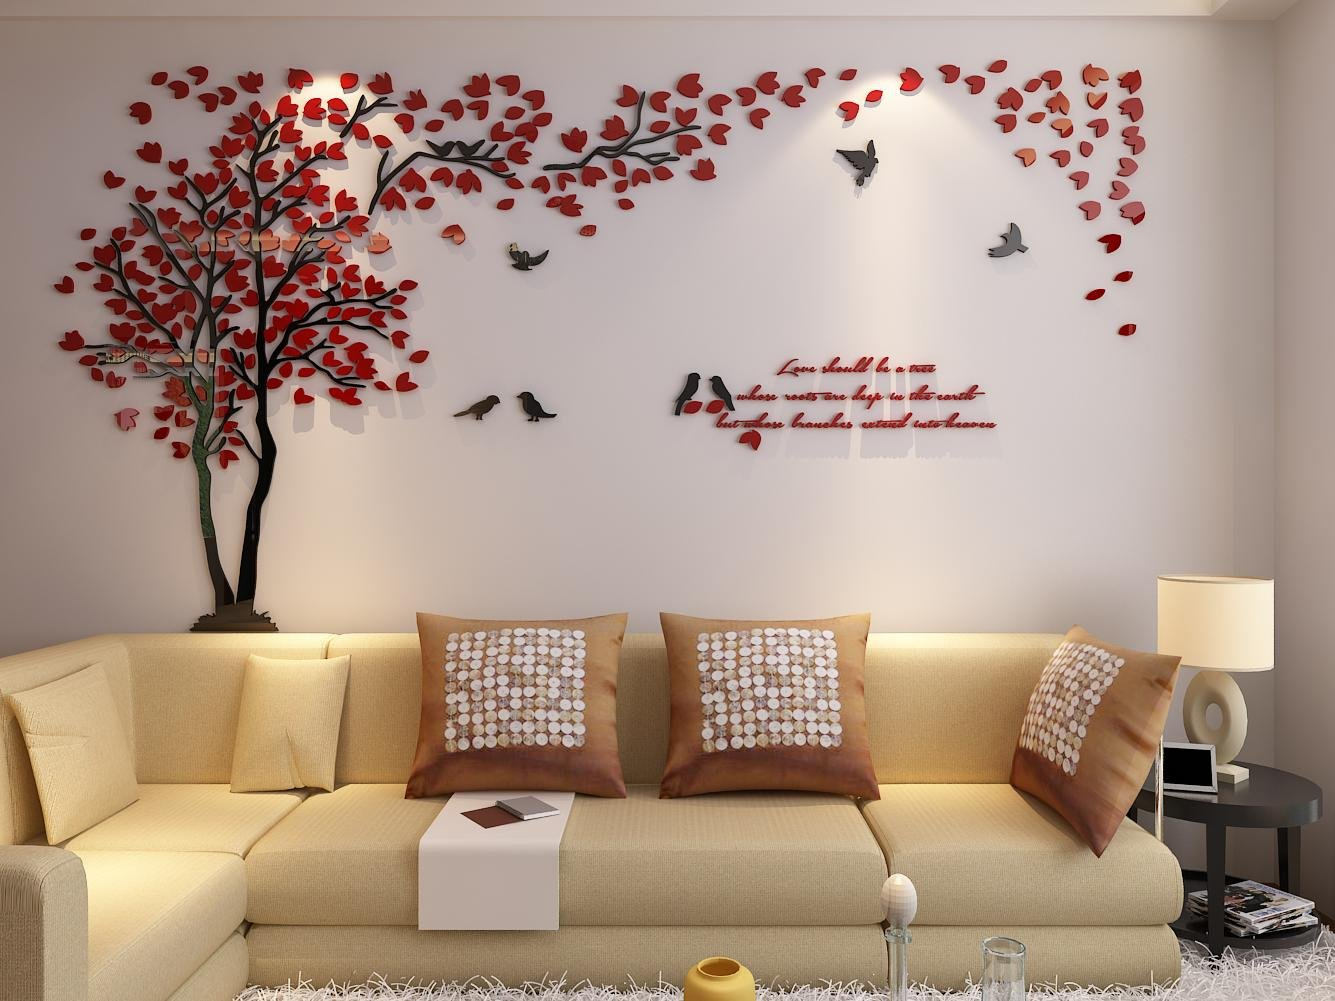 3d Couple Tree Wall Murals for Living Room Bedroom Sofa Backdrop Tv Wall Background, Originality Stickers Gift, DIY Wall Decal Home Decor Art Decorations (Large, Red) by Hermione Baby (Image #4)